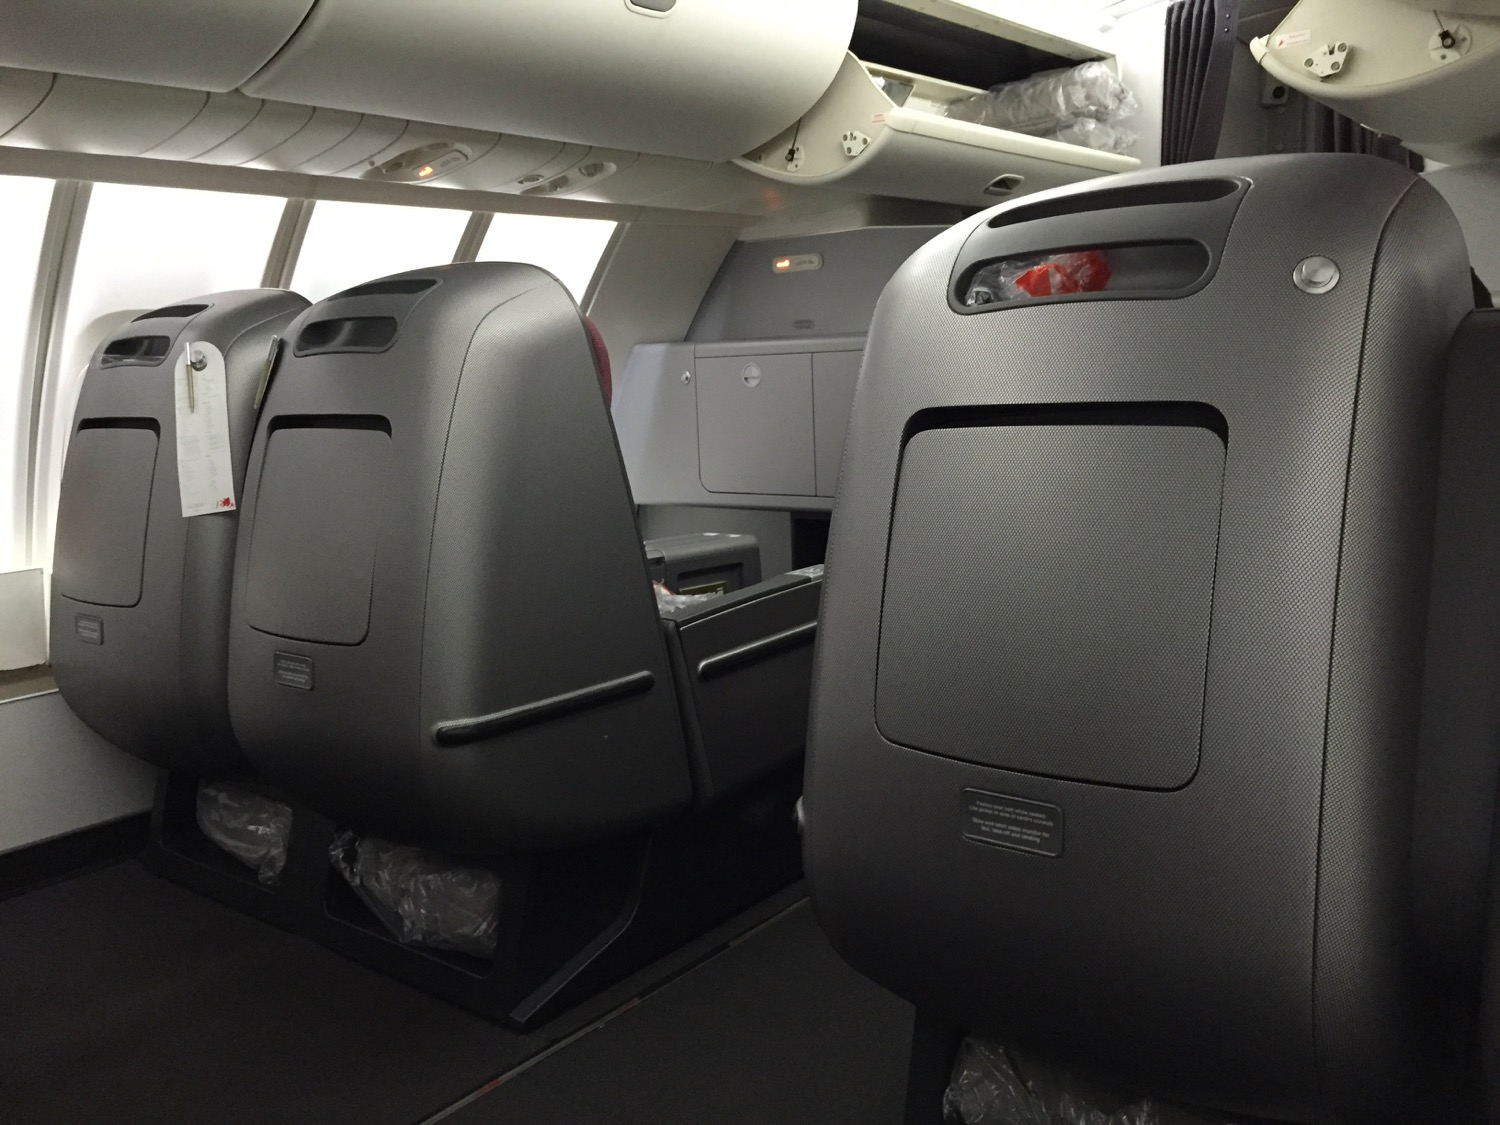 Qantas Business Class 747 Review - 6